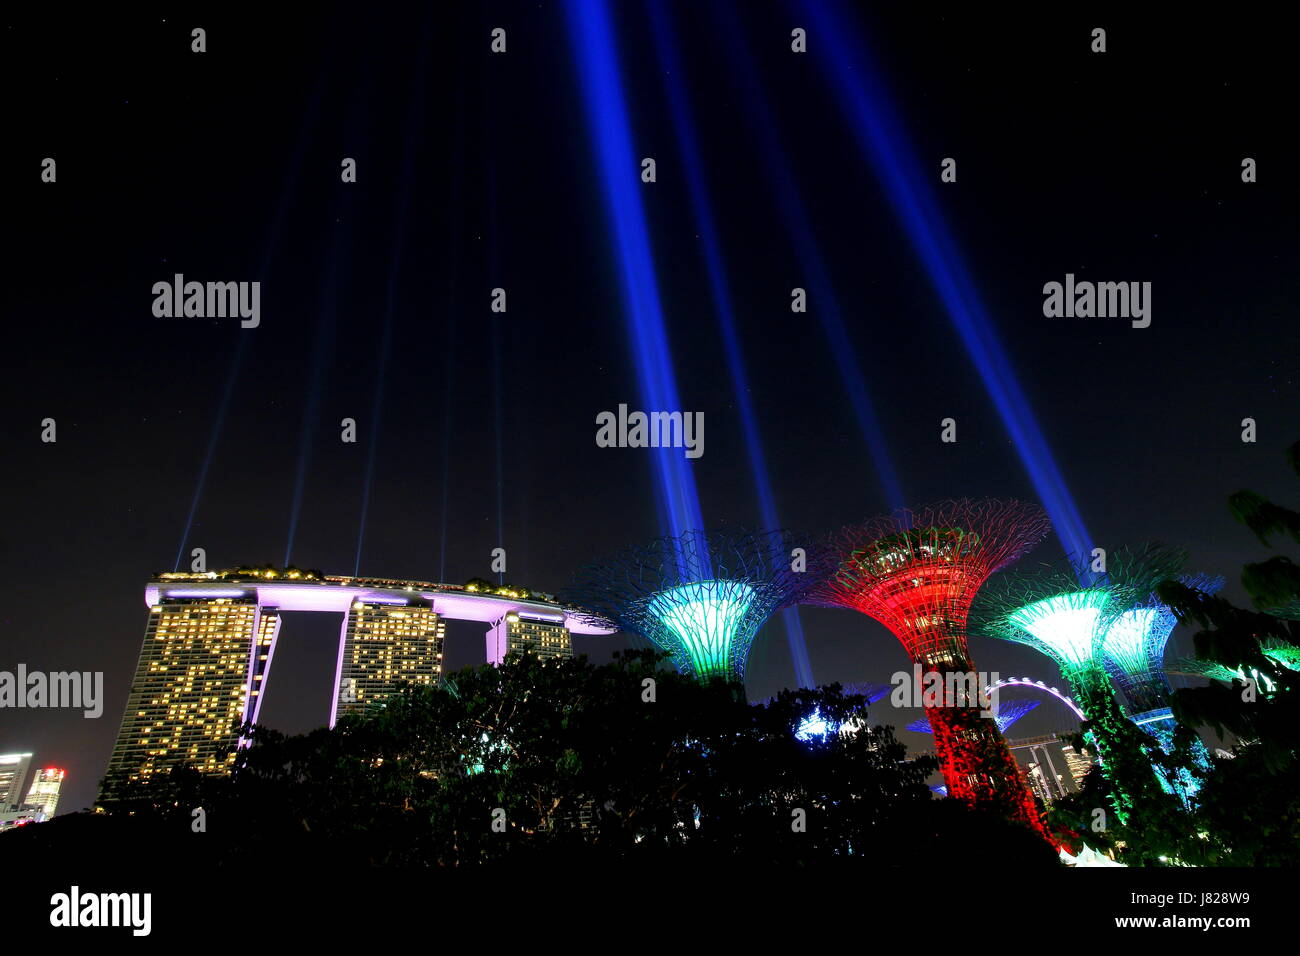 View of Marina Bay Sands and the lighted top of the Supertrees in Gardens by the Bay. - Stock Image